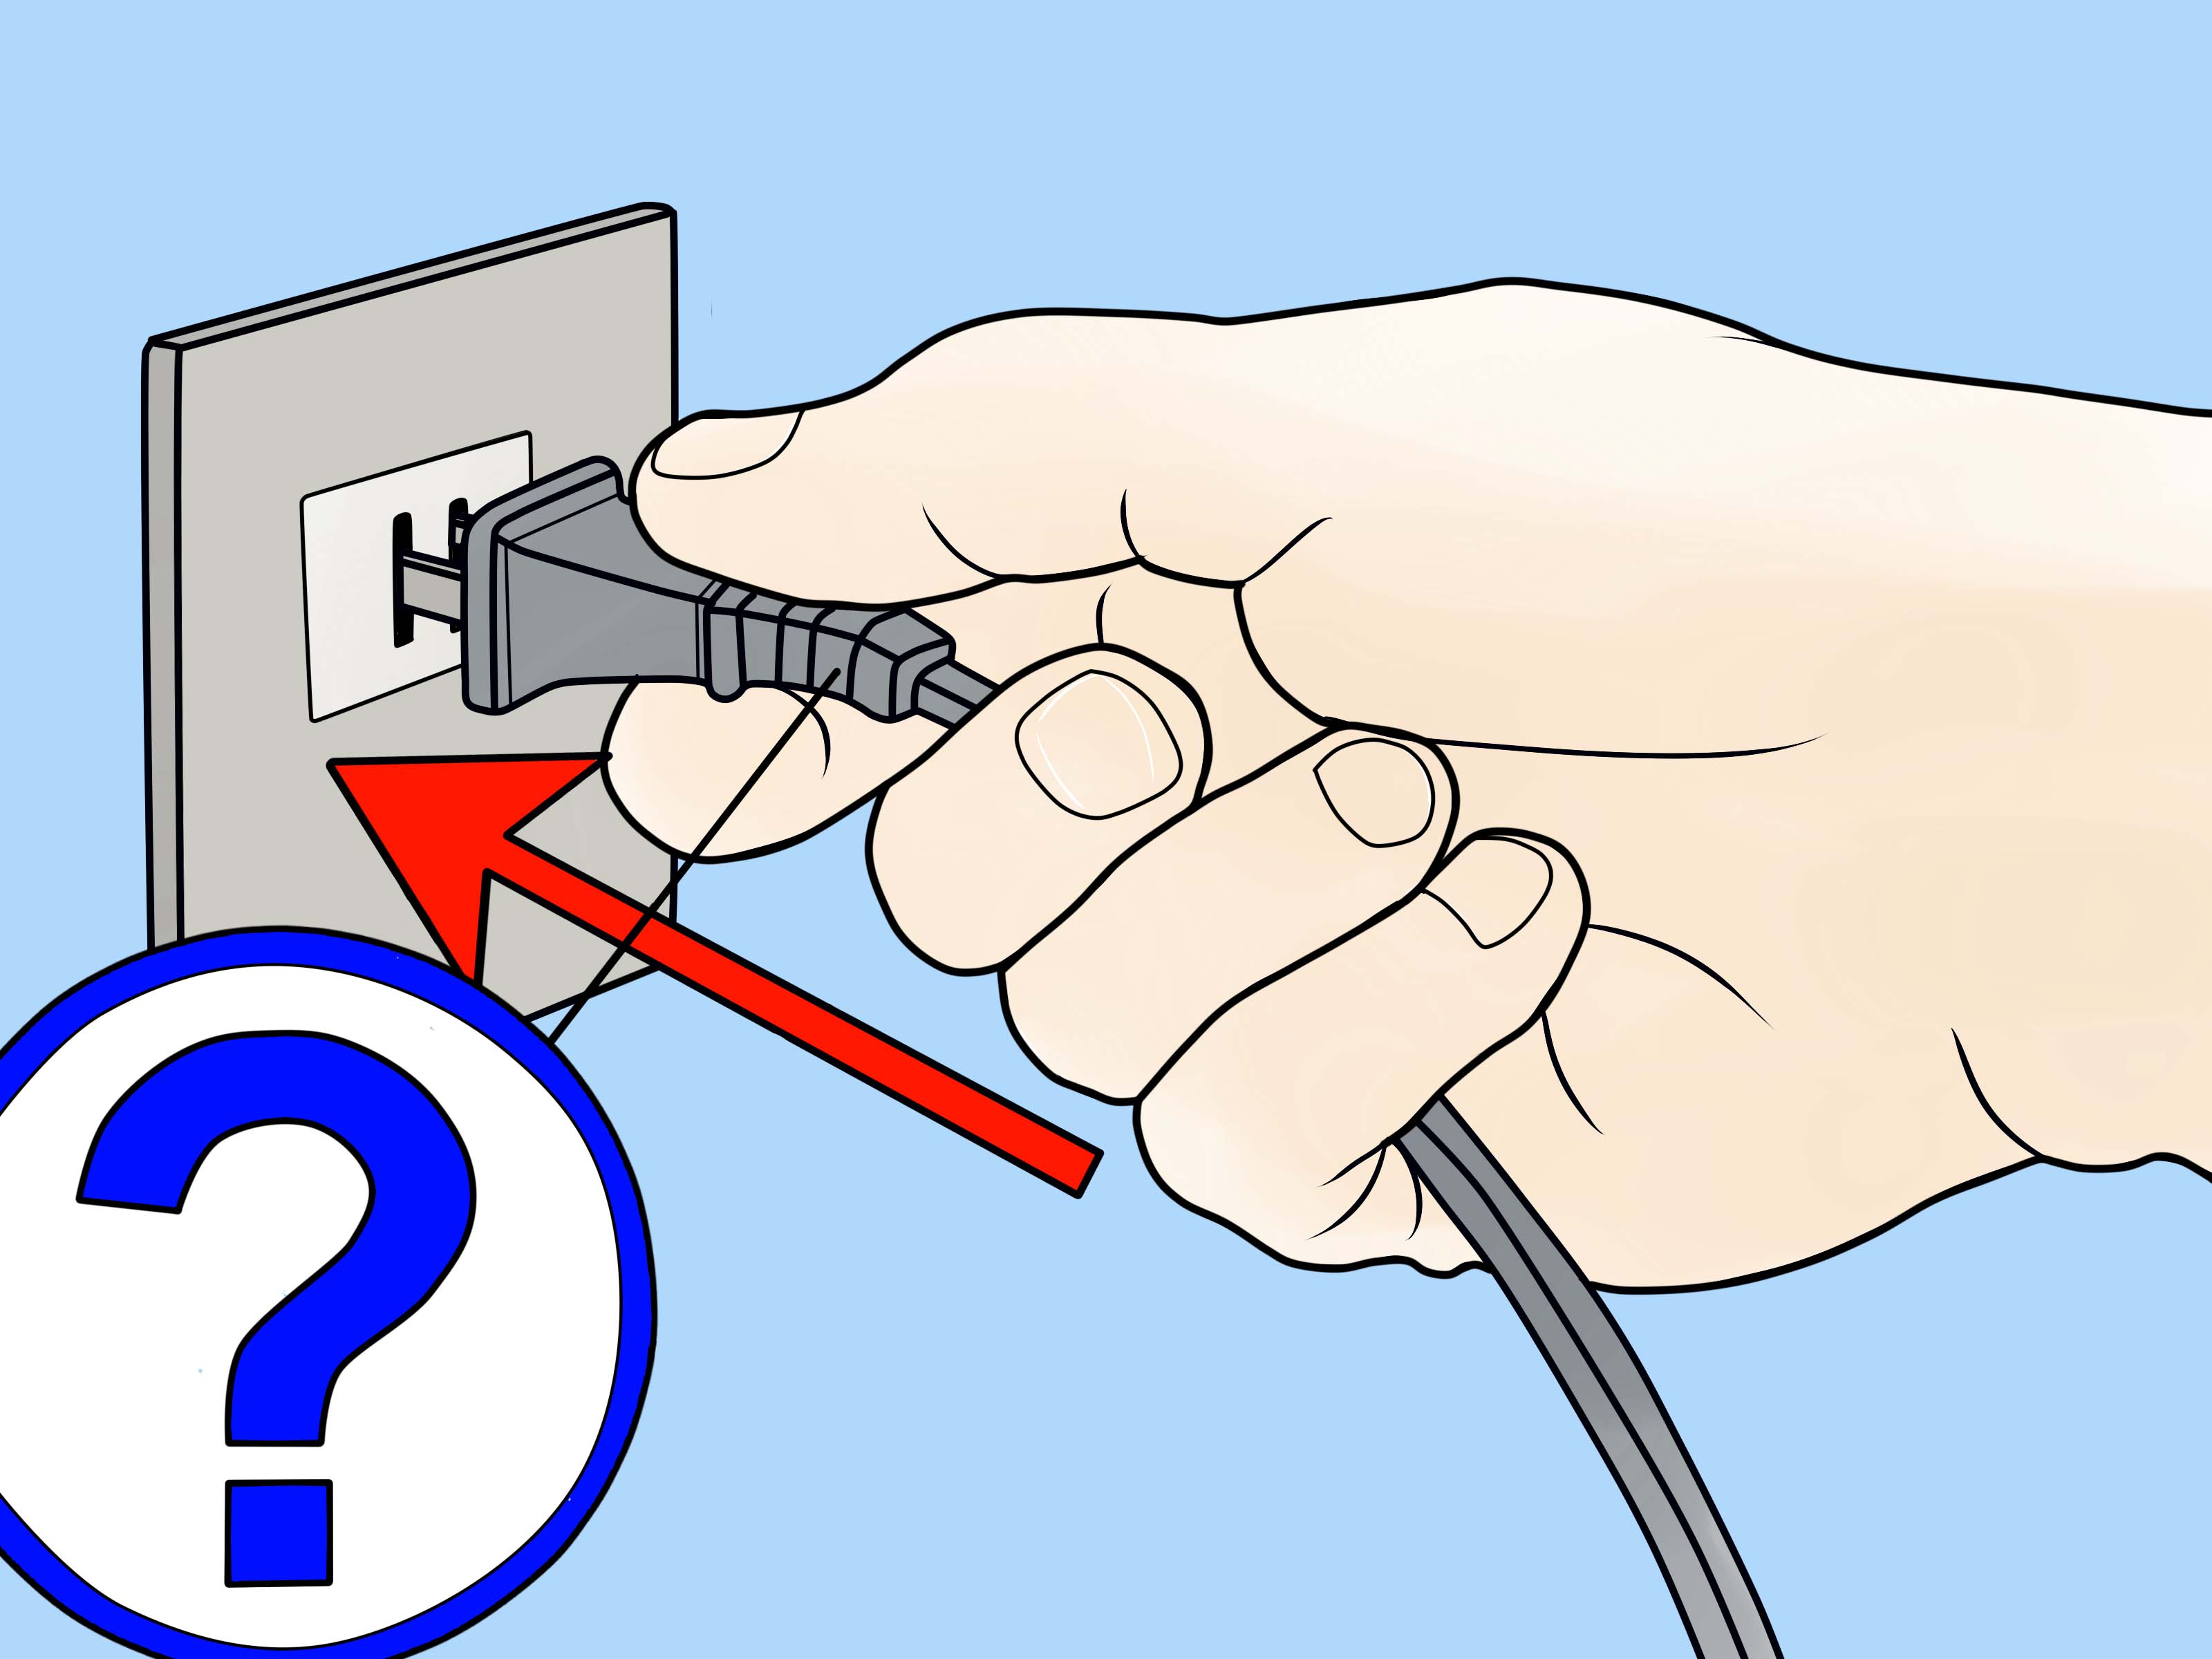 Plug clipart electrical installation. How to repair an